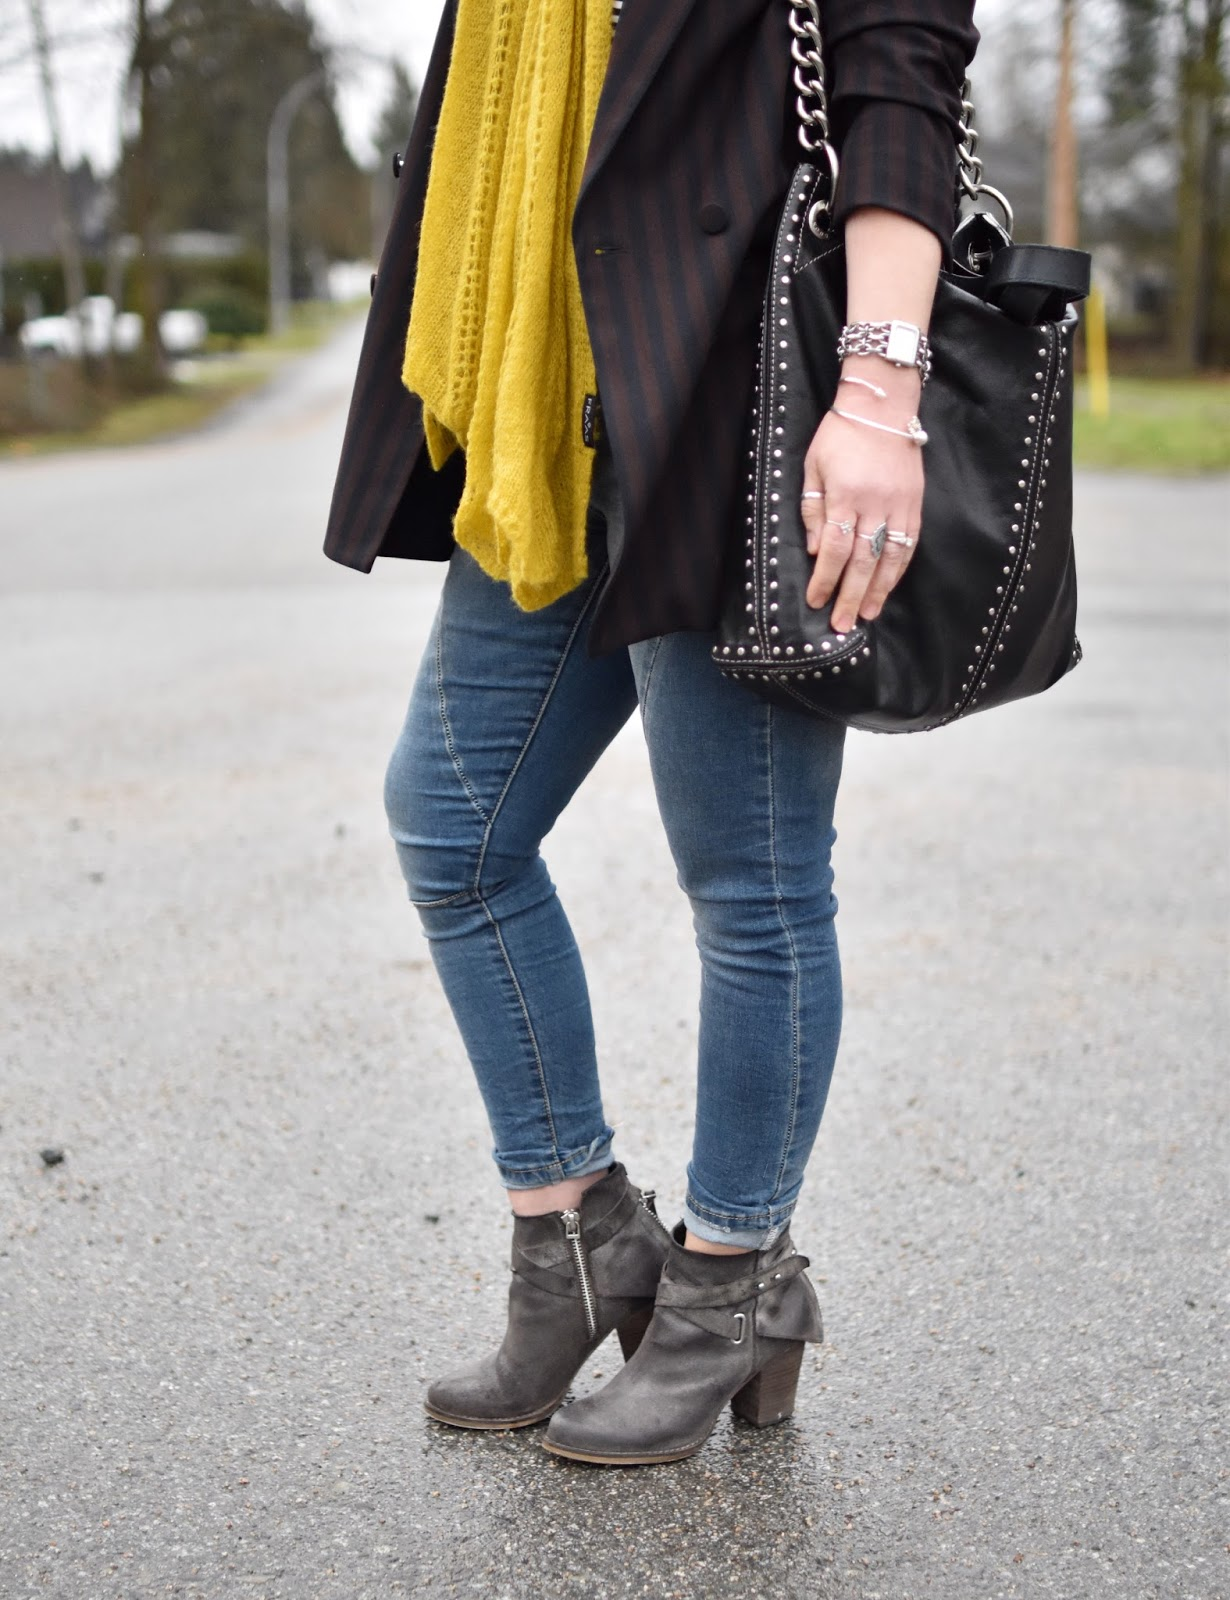 Monika Faulkner outfit inspiration - double-breasted suit jacket, skinny jeans, booties, mustard scarf, MK studded bag